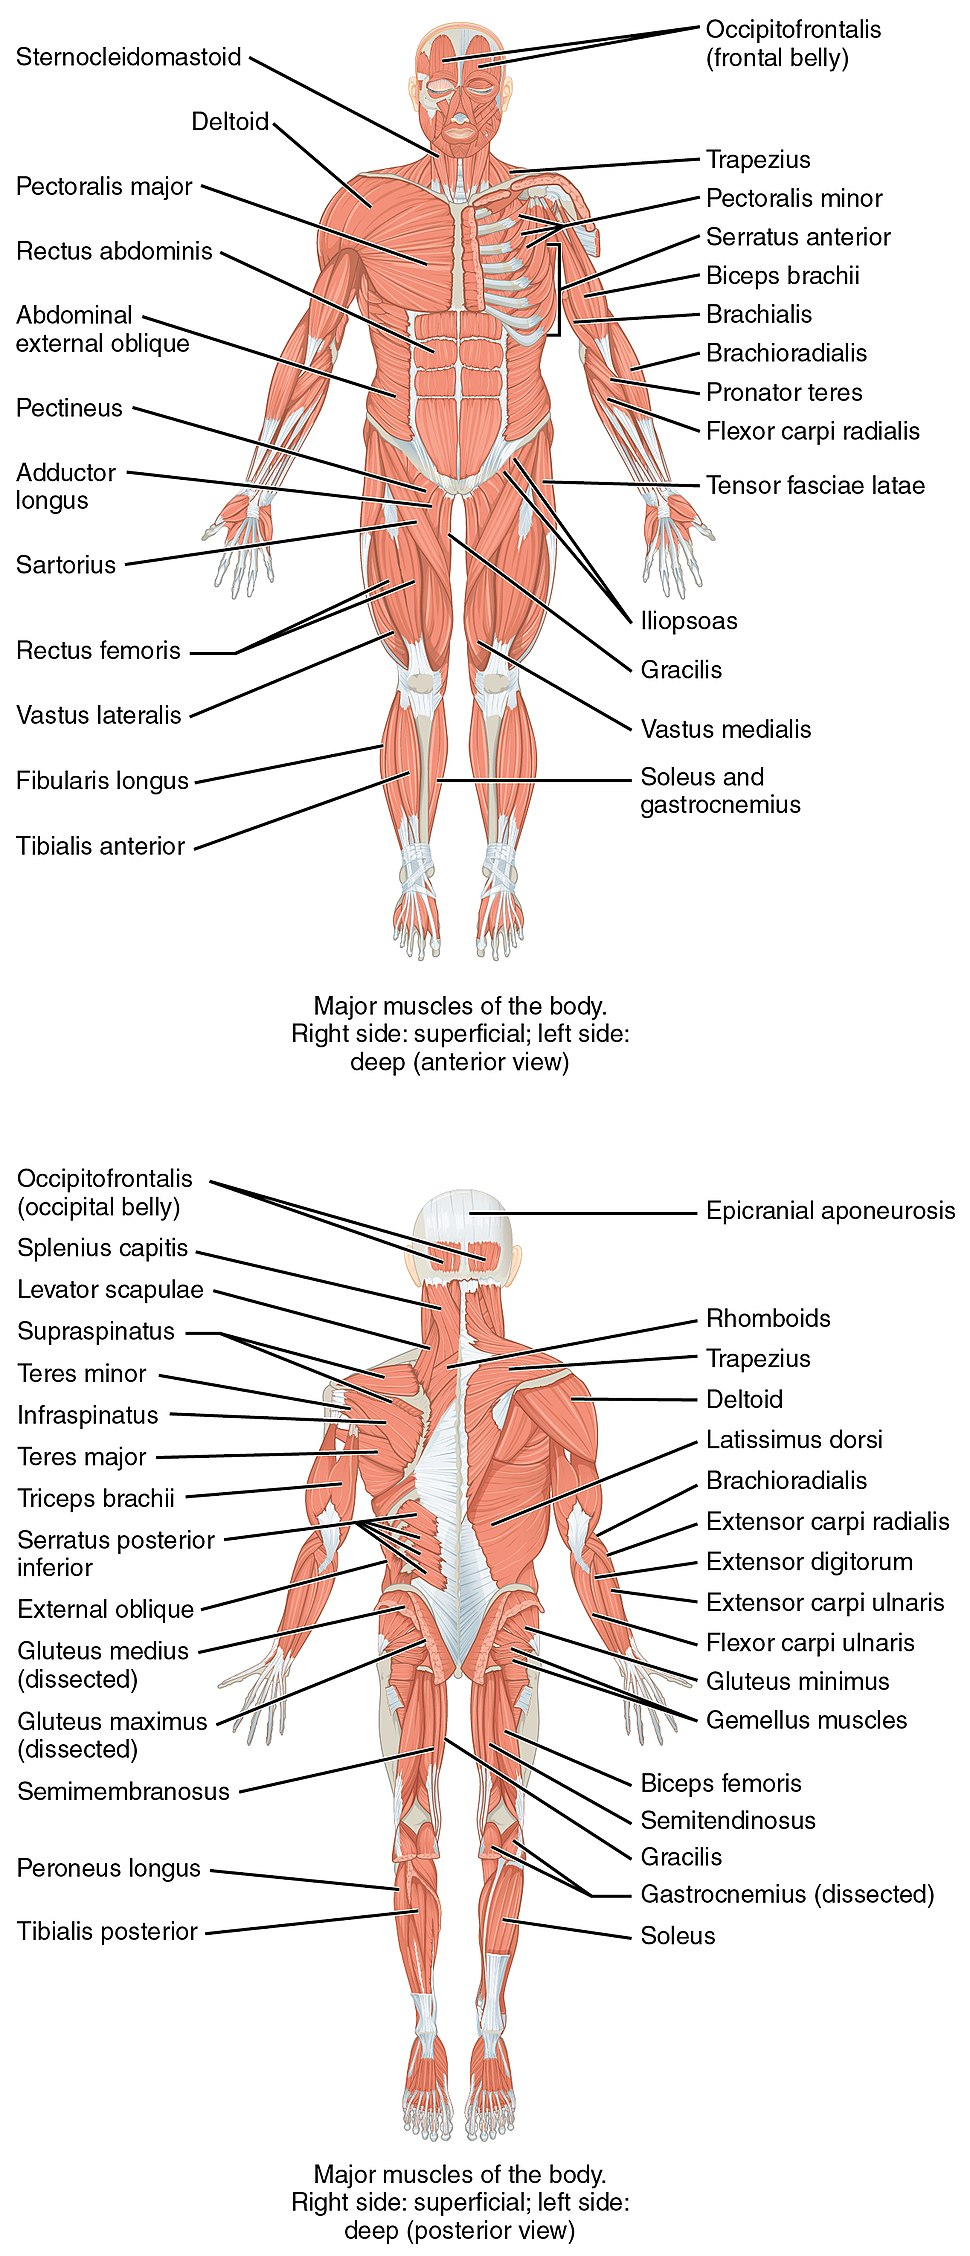 1105 Anterior and Posterior Views of Muscles